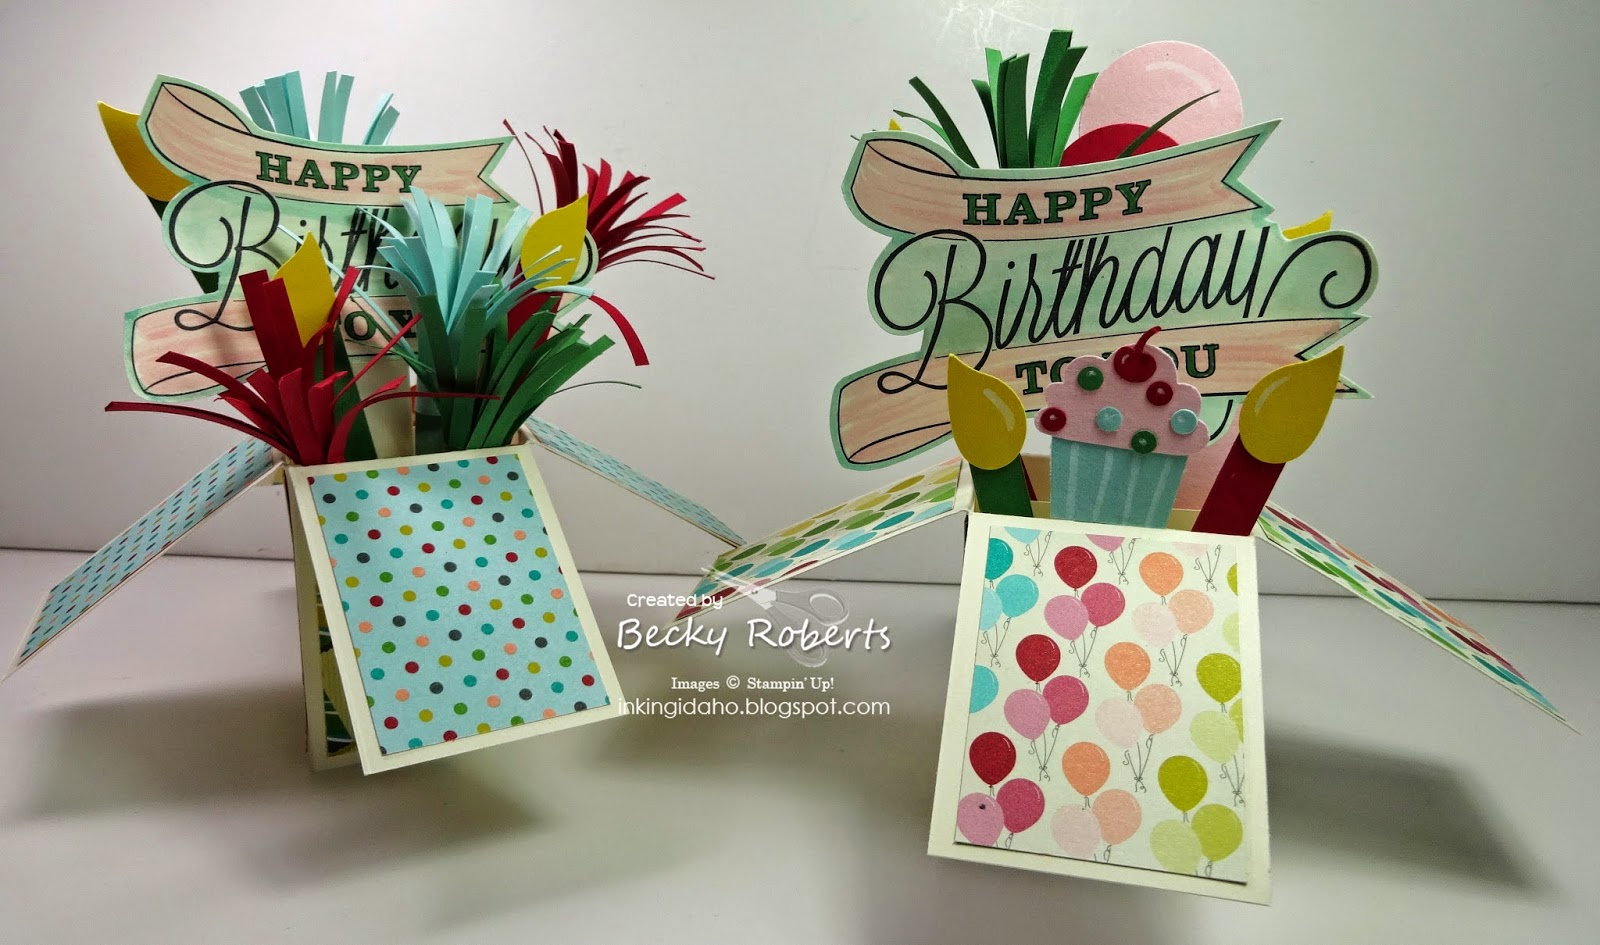 Inking Idaho Birthday Explosion Boxes – Birthday Cards in a Box